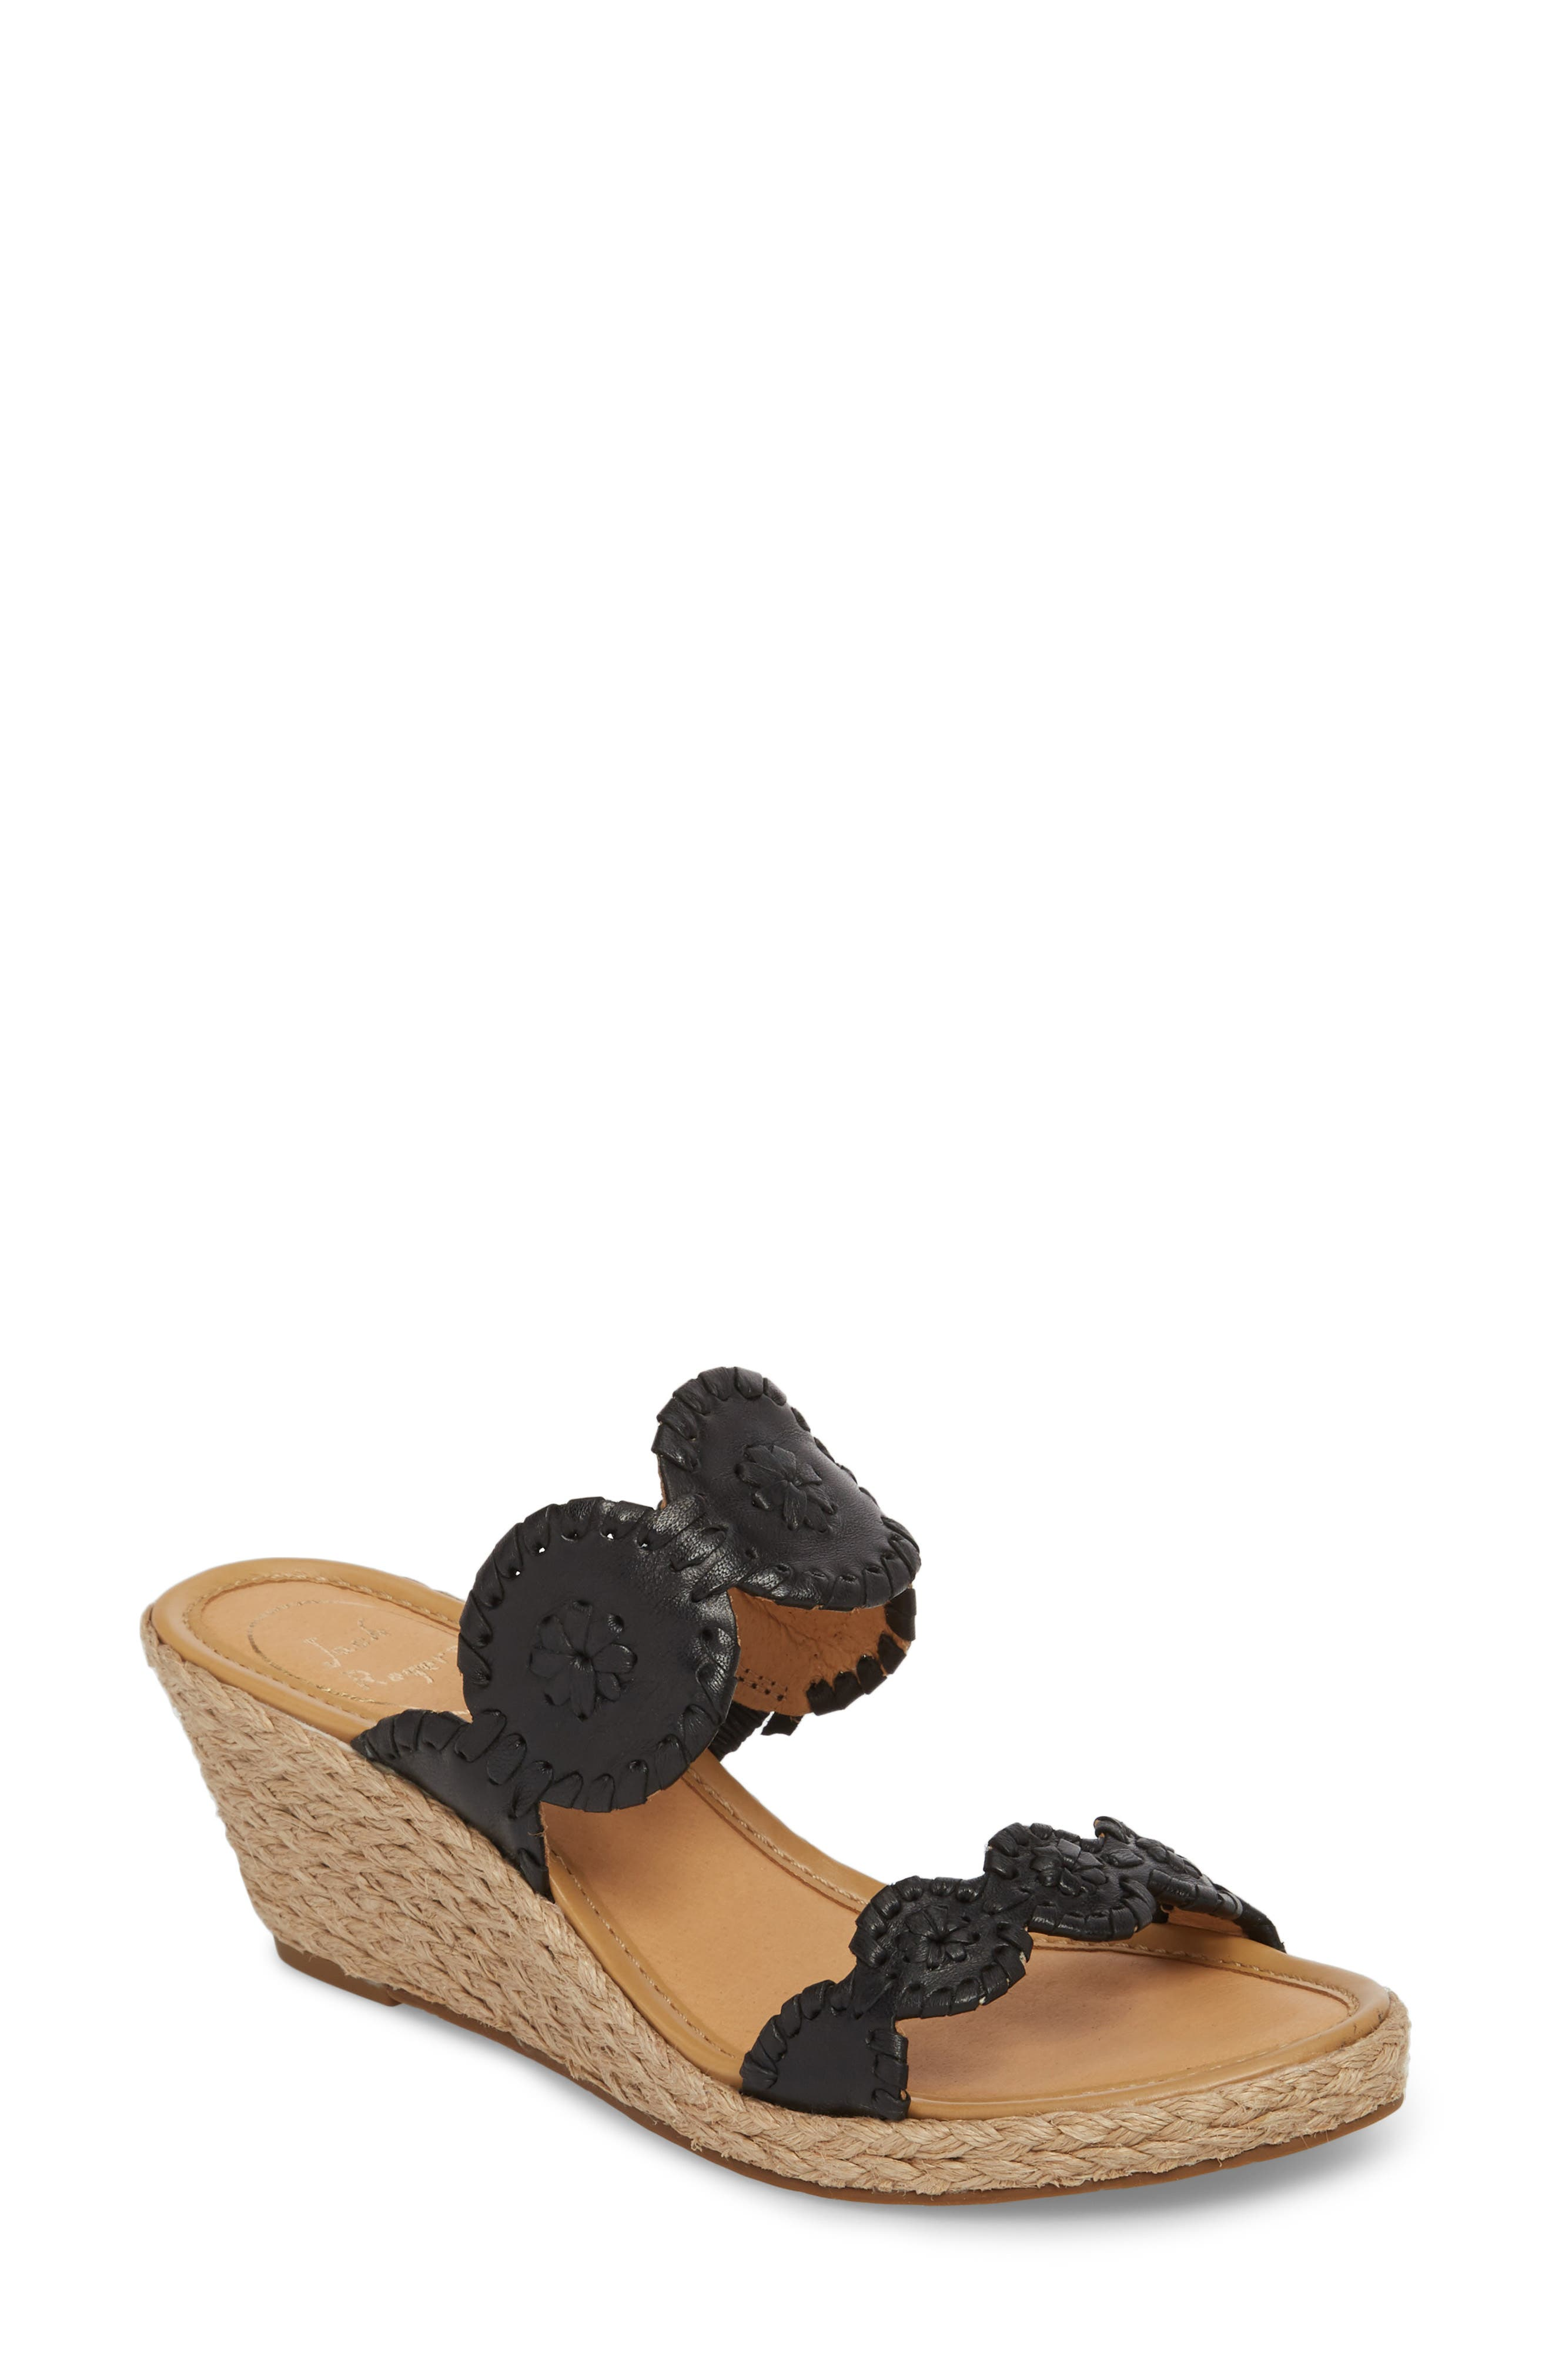 JACK ROGERS 'Shelby' Whipstitched Wedge Sandal, Main, color, 001